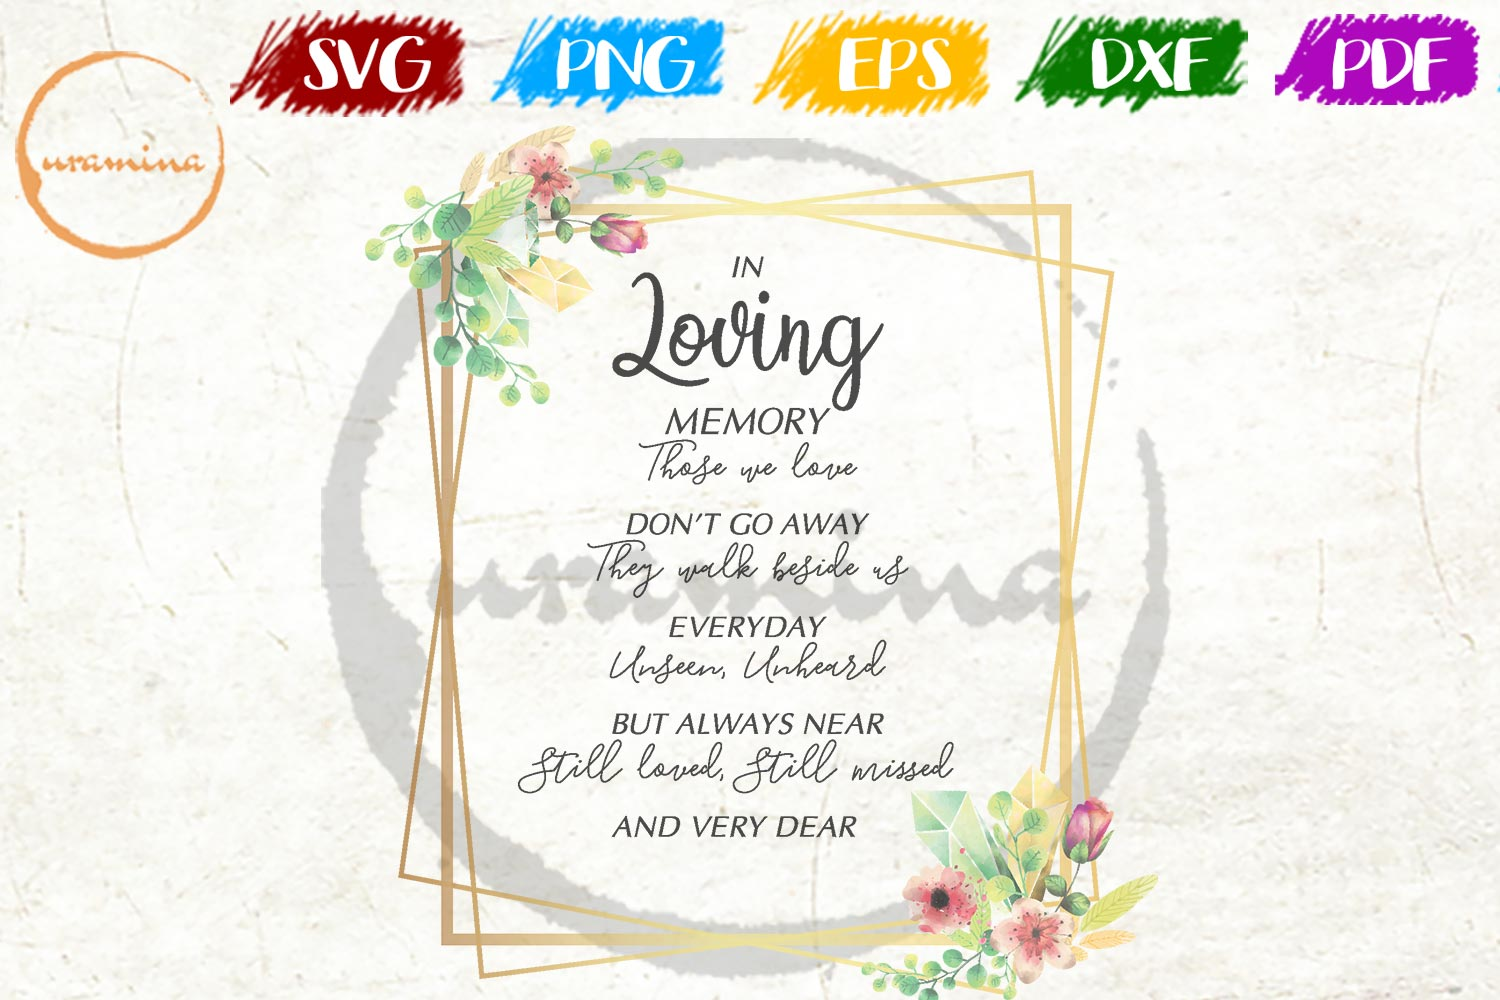 Download Free In Loving Memory Those We Love Graphic By Uramina Creative Fabrica for Cricut Explore, Silhouette and other cutting machines.